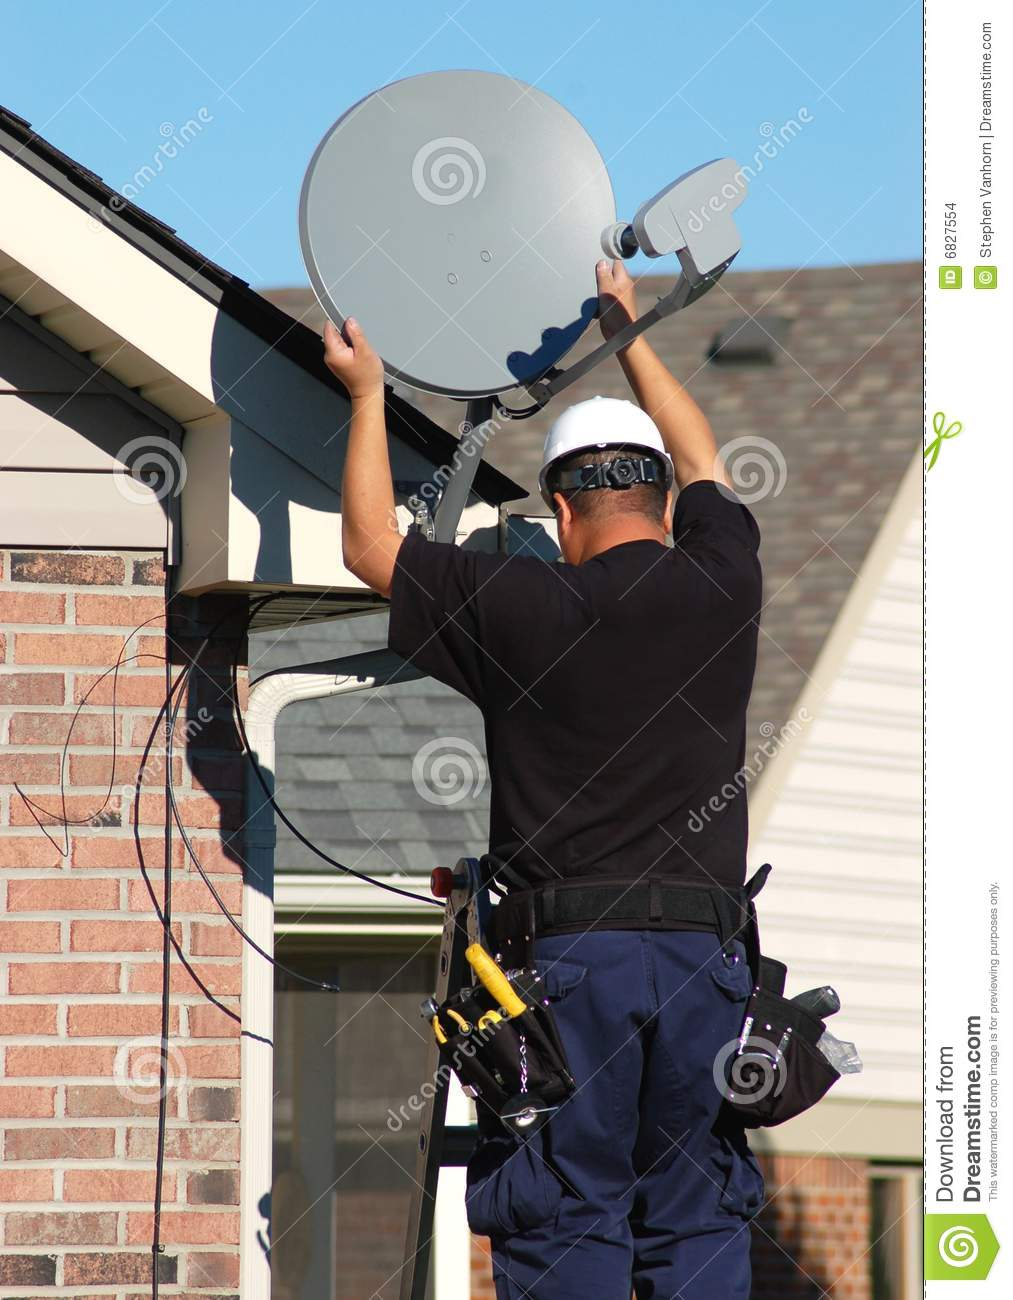 satellite technician stock images